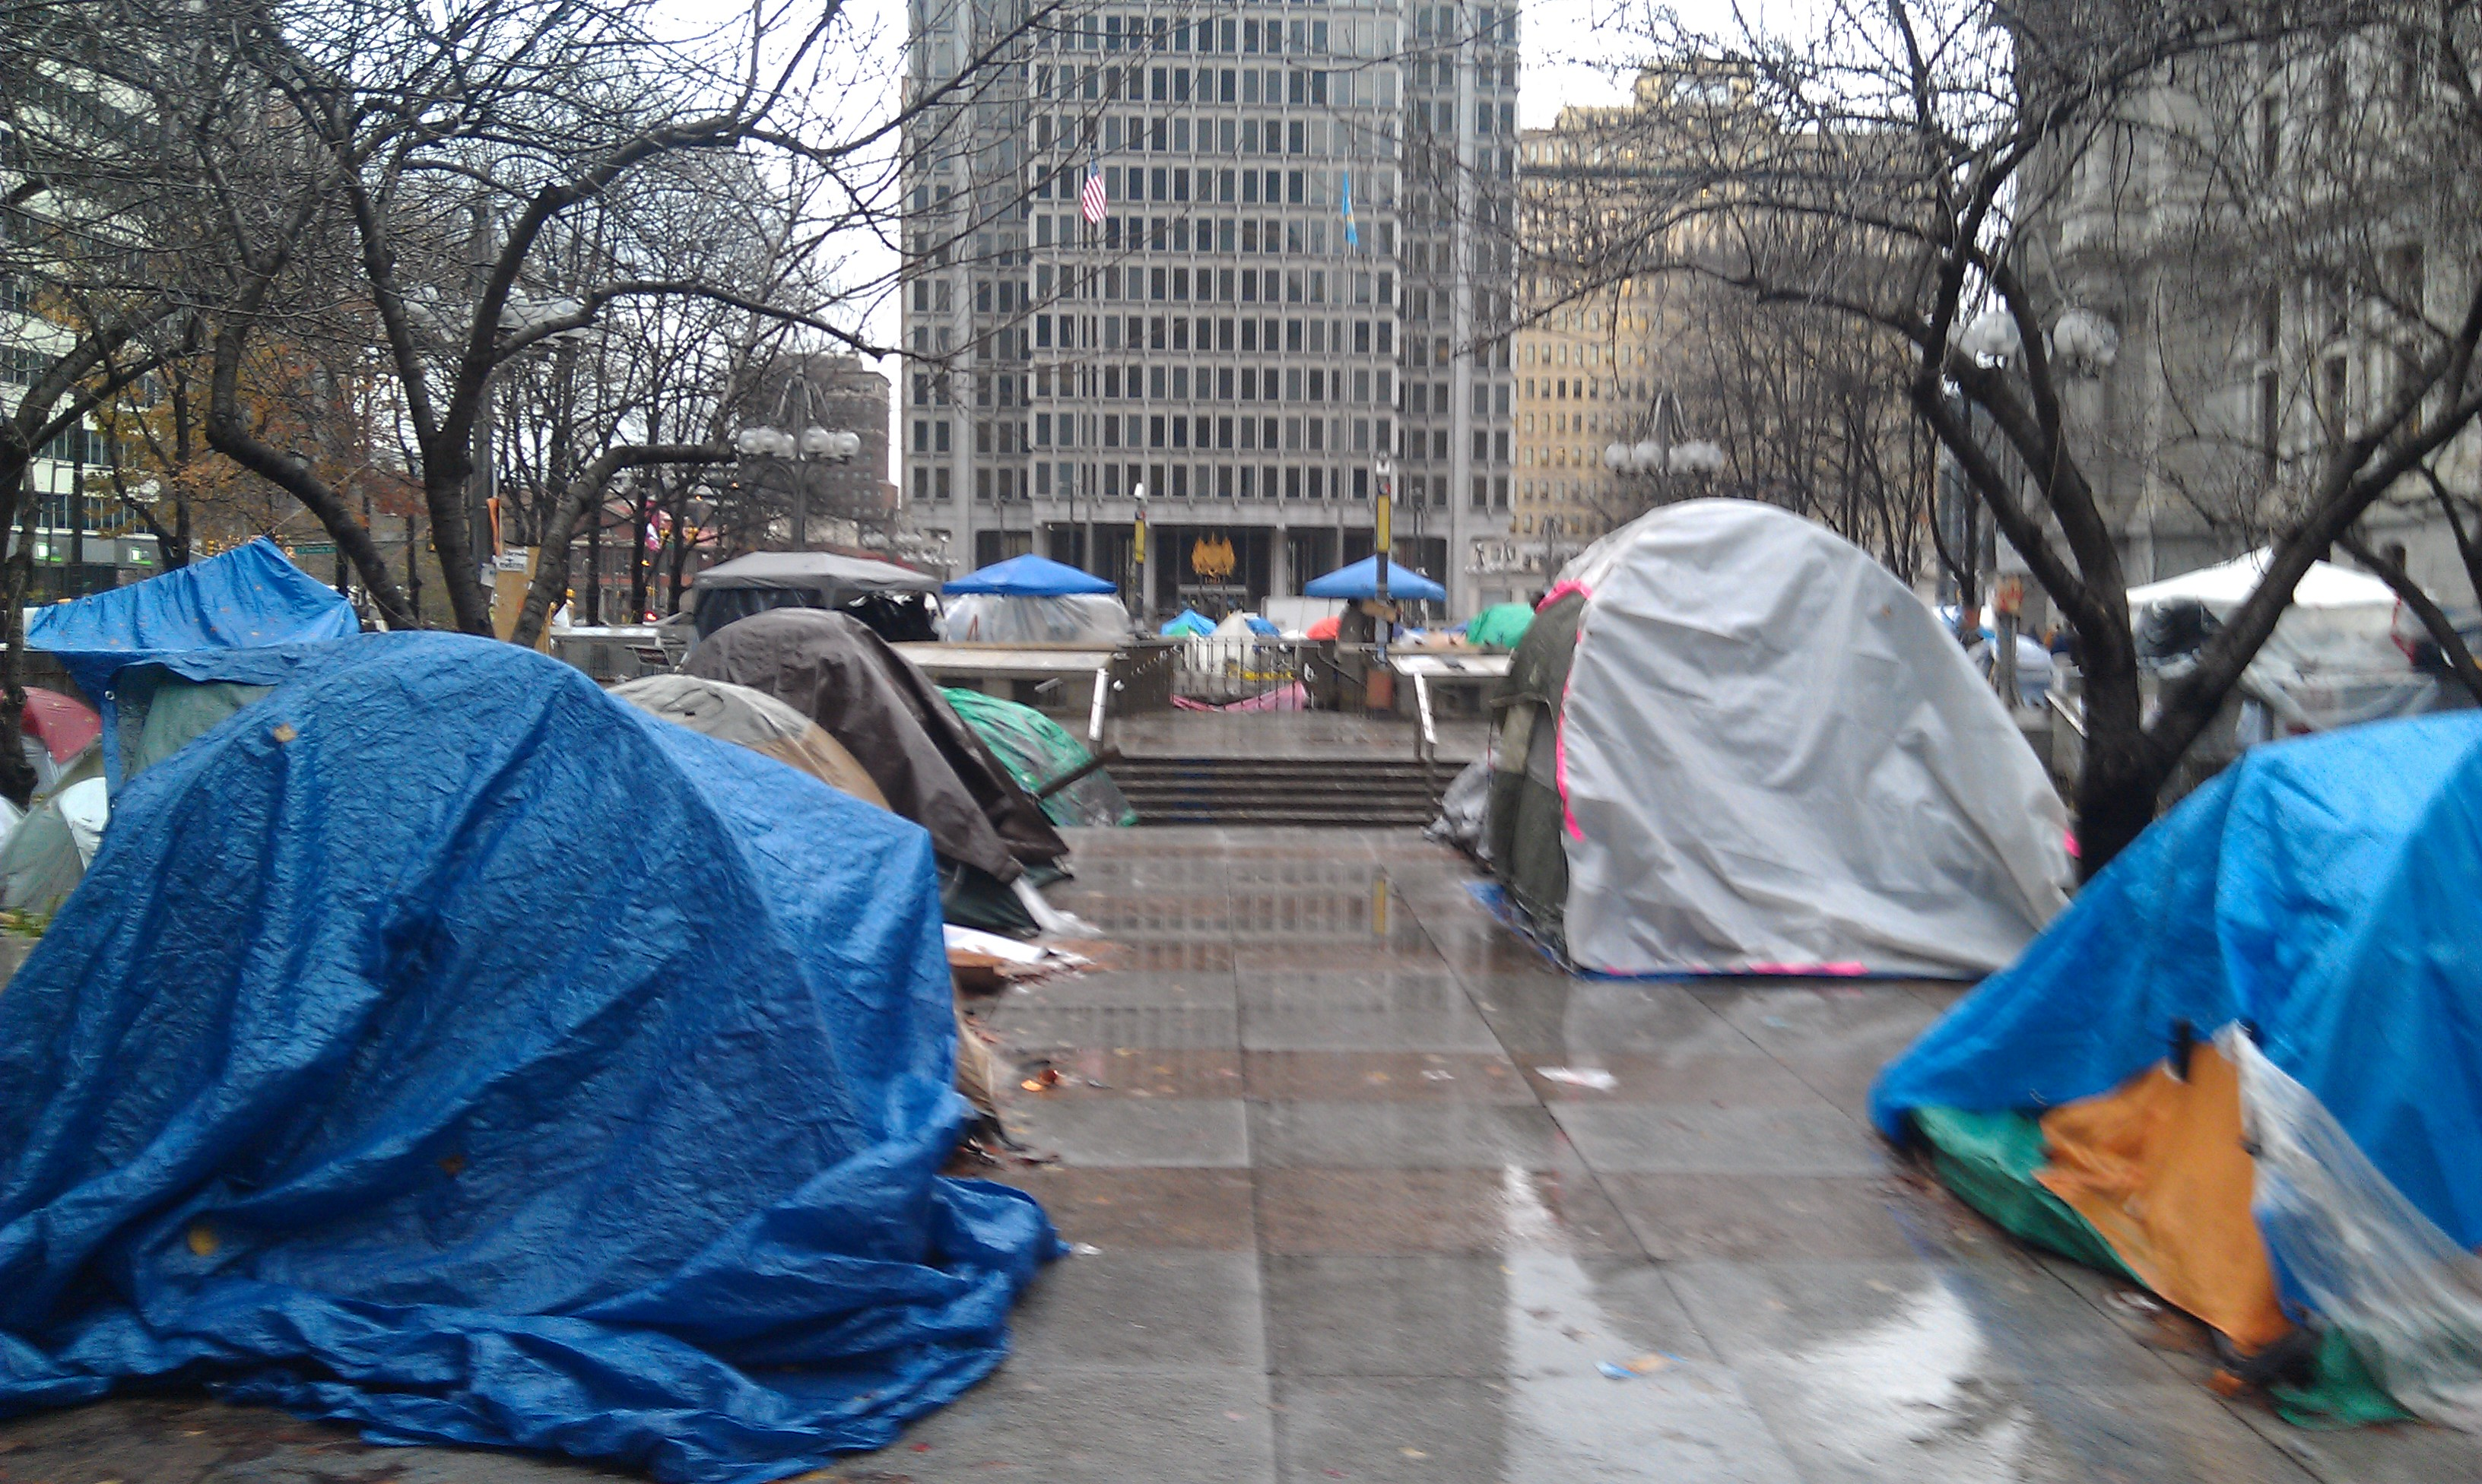 Occupy Philadelphia Tents